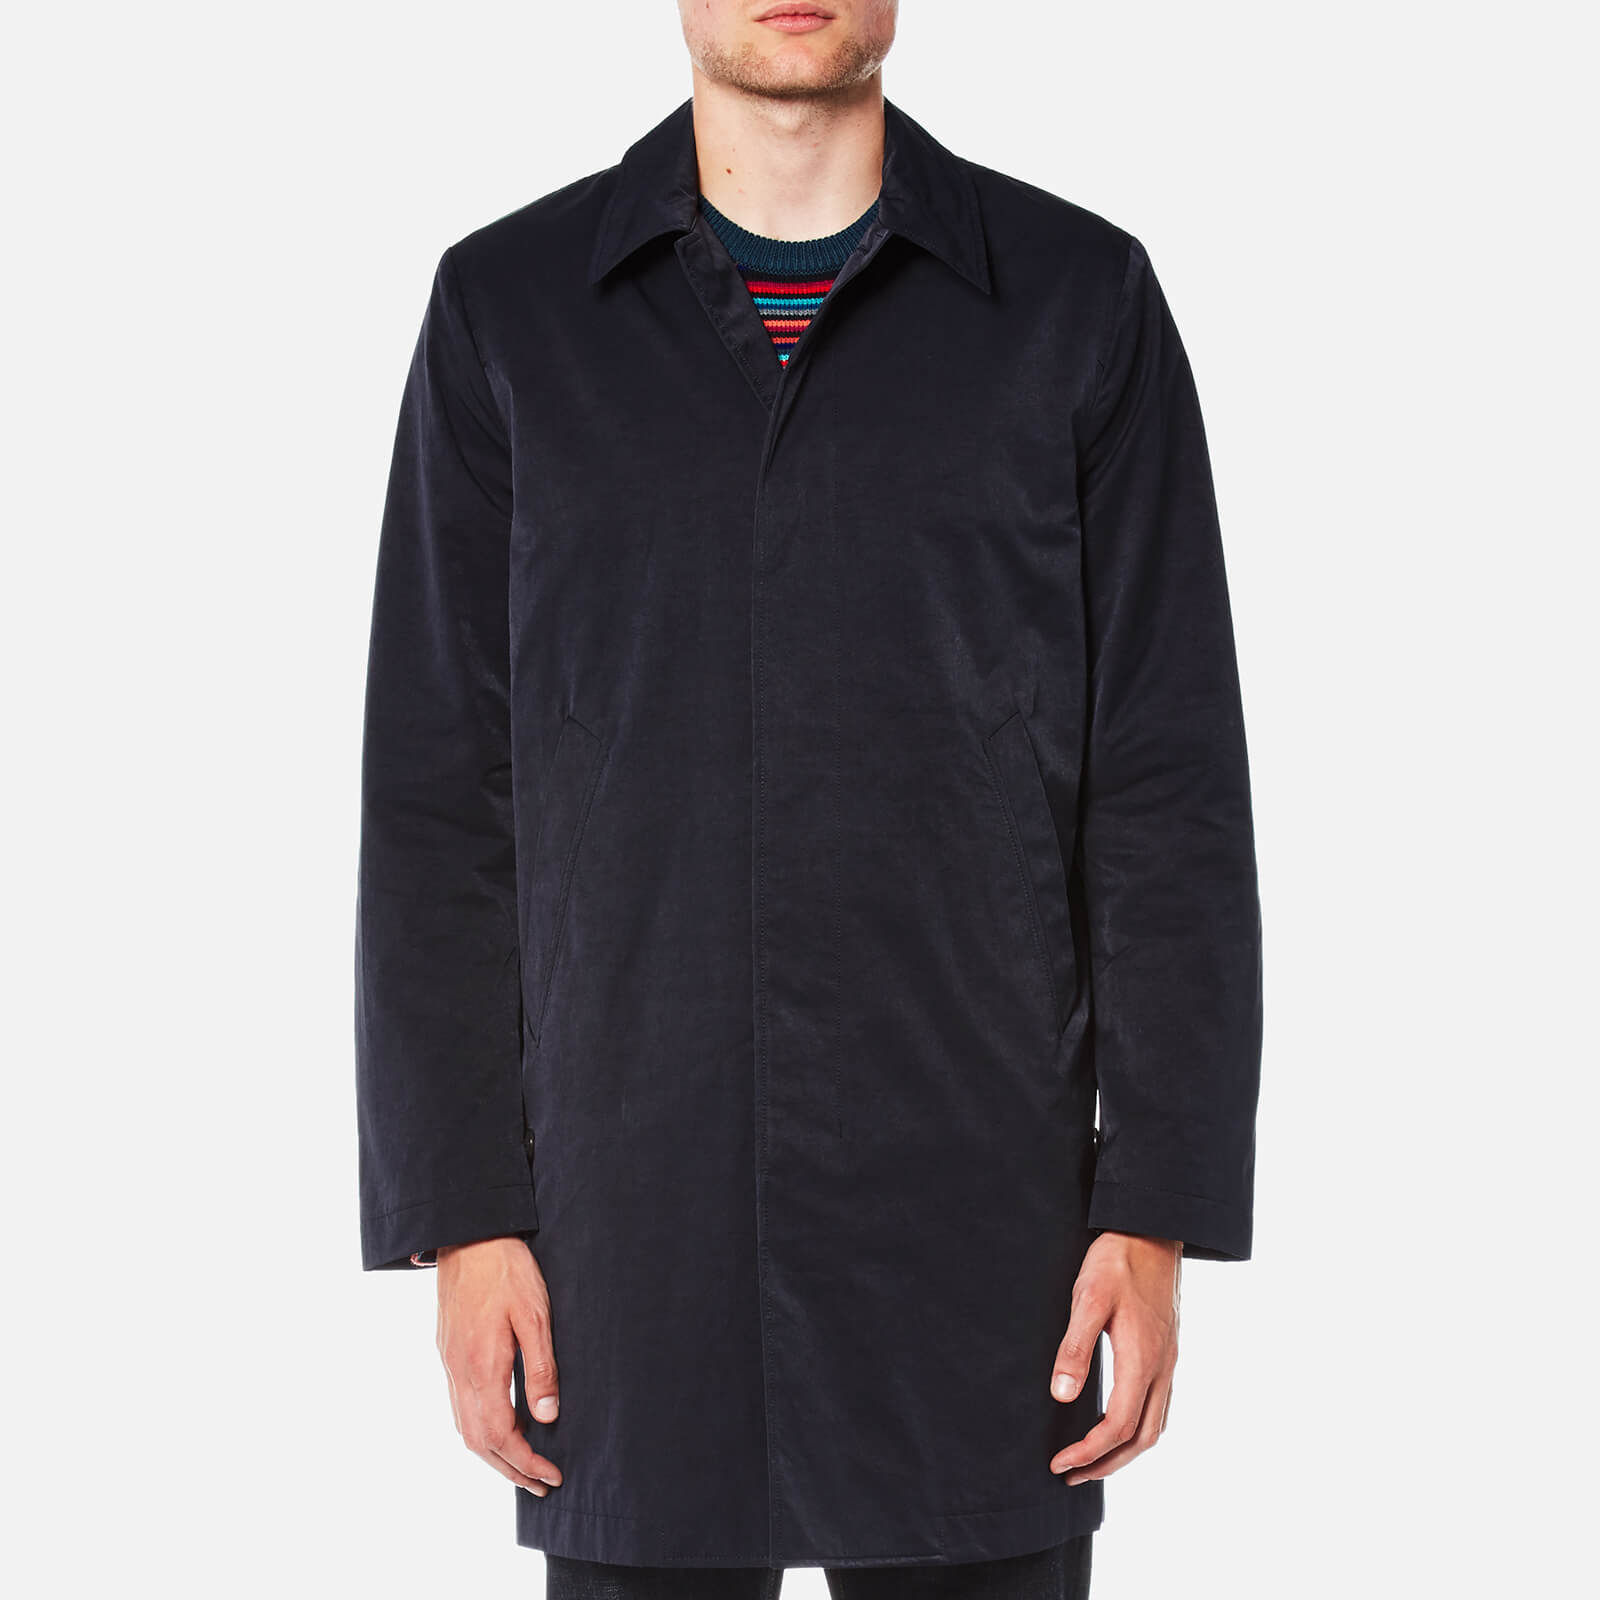 34e1d31a8f018 PS by Paul Smith Men's Buttoned Mac - Blue - Free UK Delivery over £50